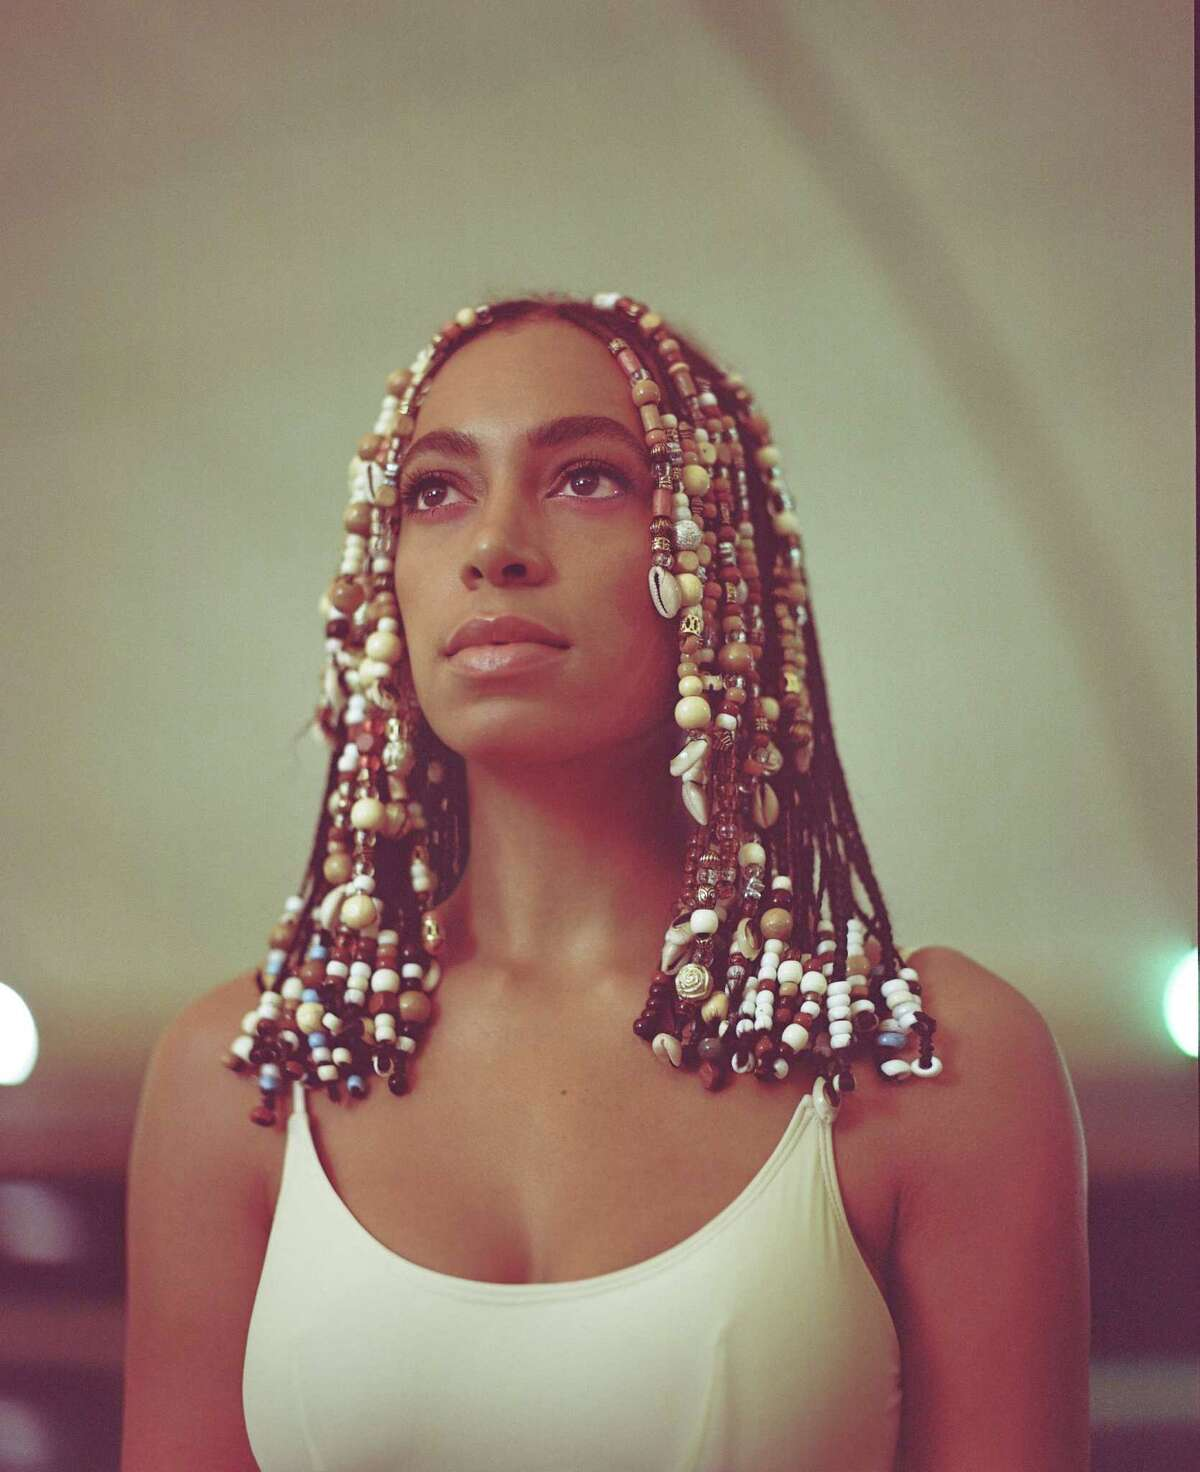 Solange released a 112-page digital book with her album A Seat At the Table.